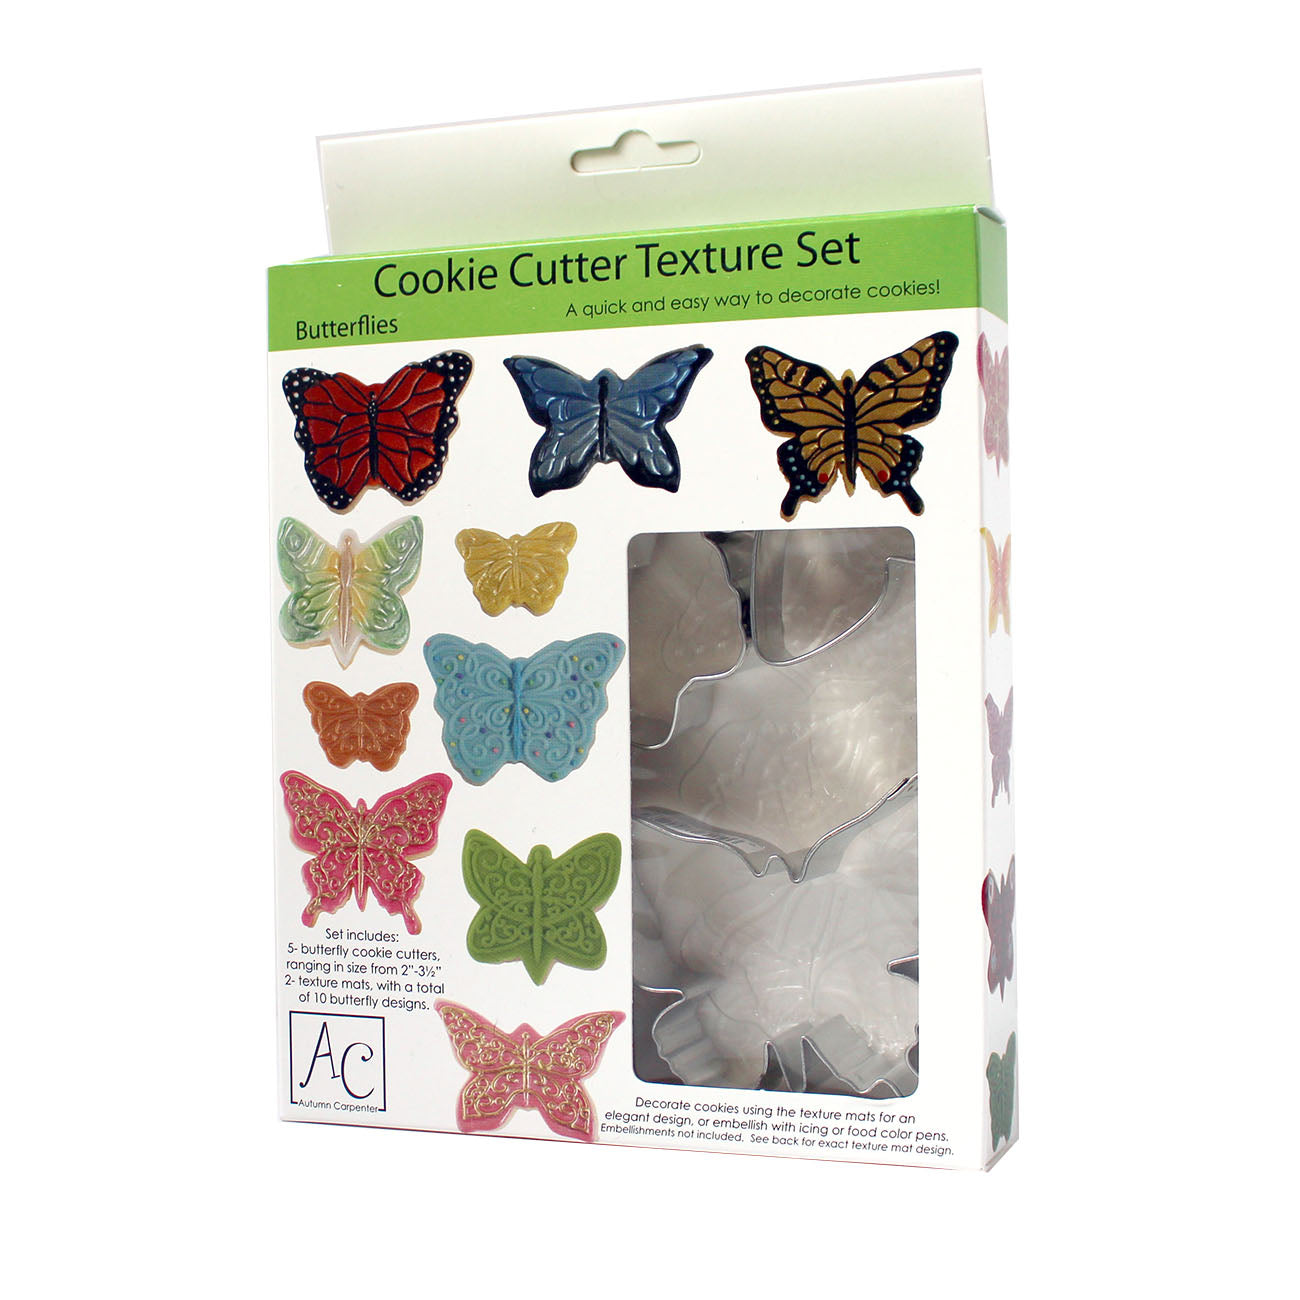 COOKIE CUTTER - ANIMAL - TEXTURE SET - BUTTERFLY